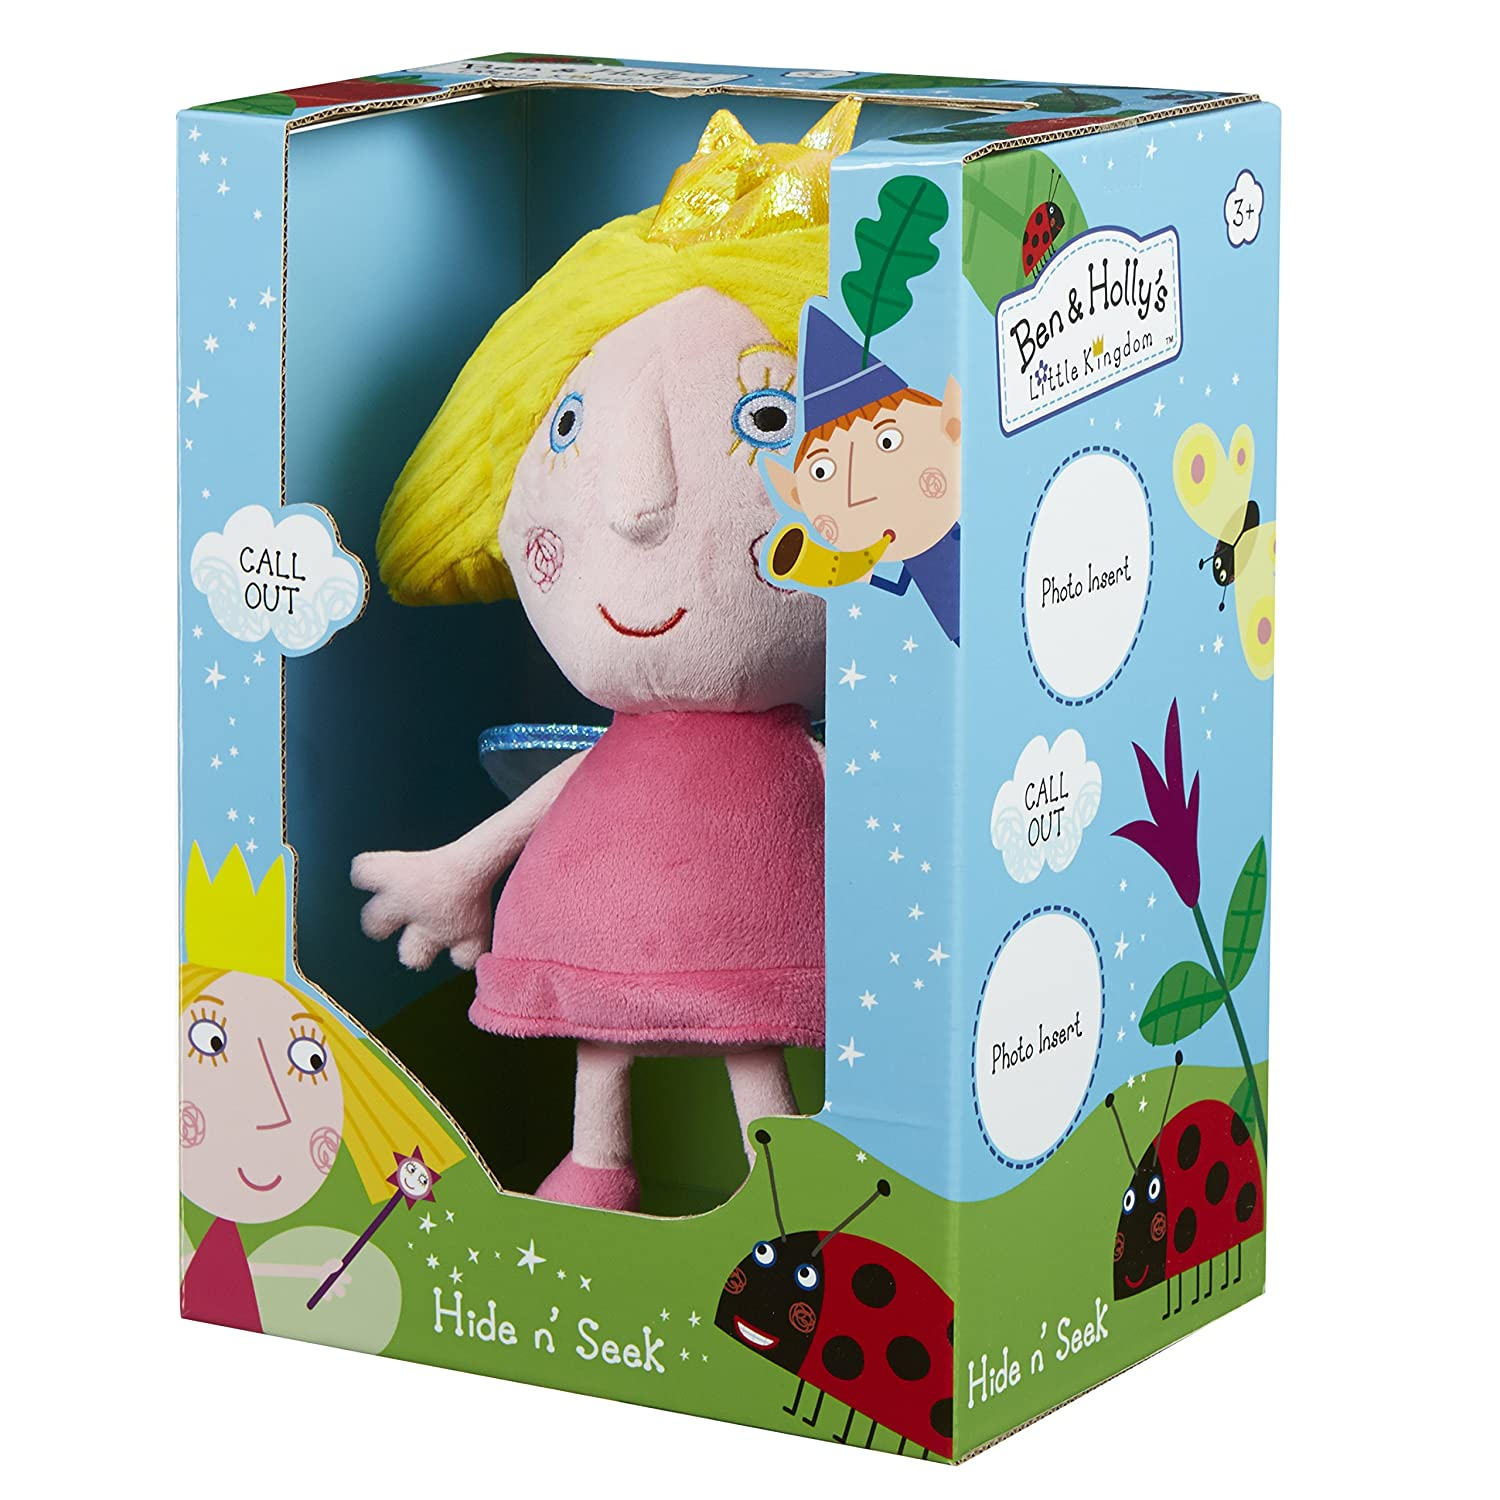 Amazon.com: Ben and Hollys Little Kingdom Hide & Seek Holly: Toys & Games